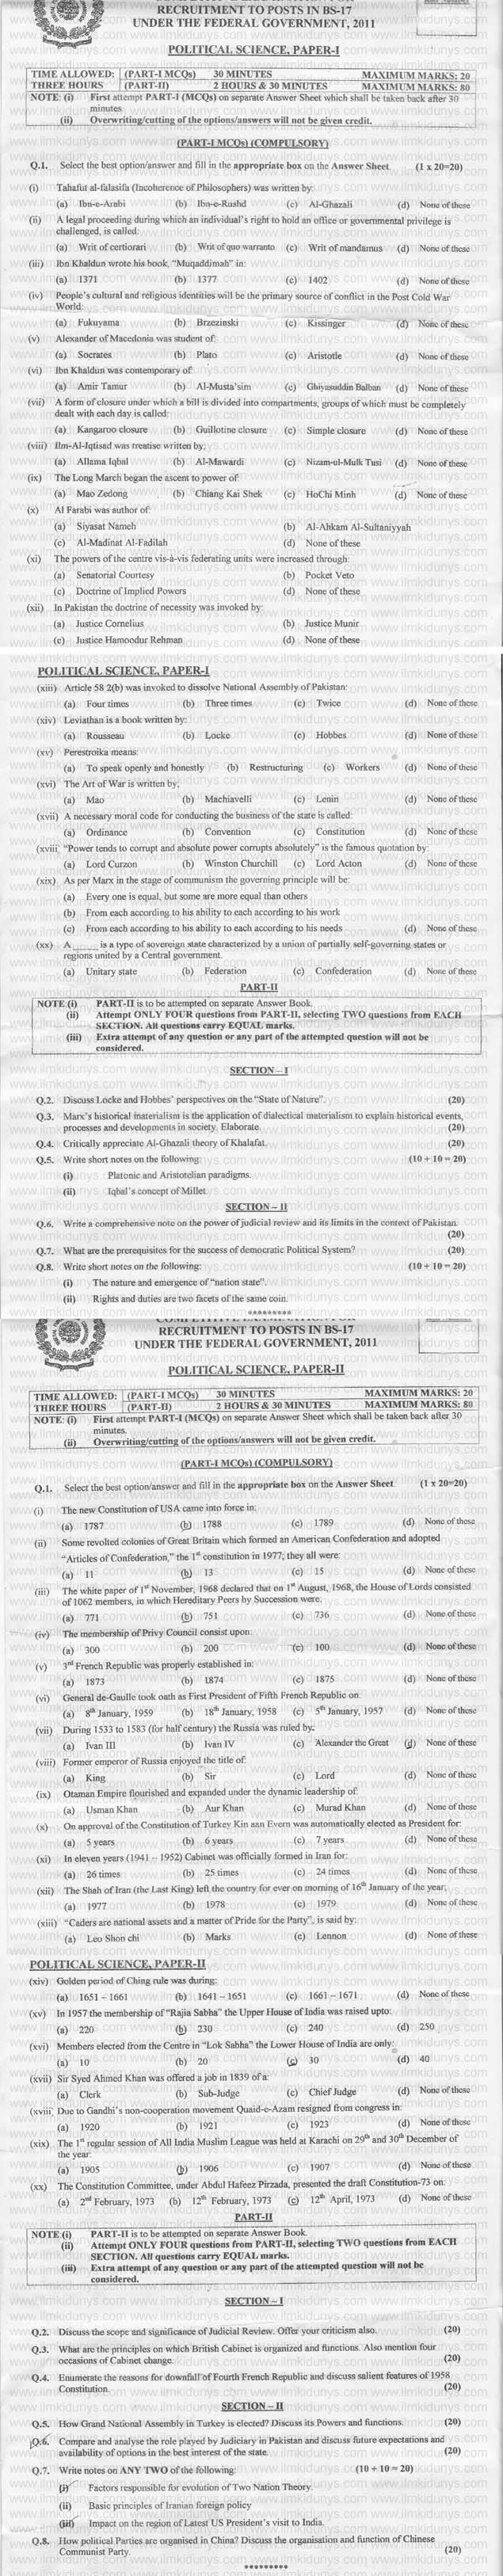 css political science past papers 2011 Political science paper 2011 css 2011 papers  with regards to the judiciary  question, i just mentioned how in the past, the supreme court.